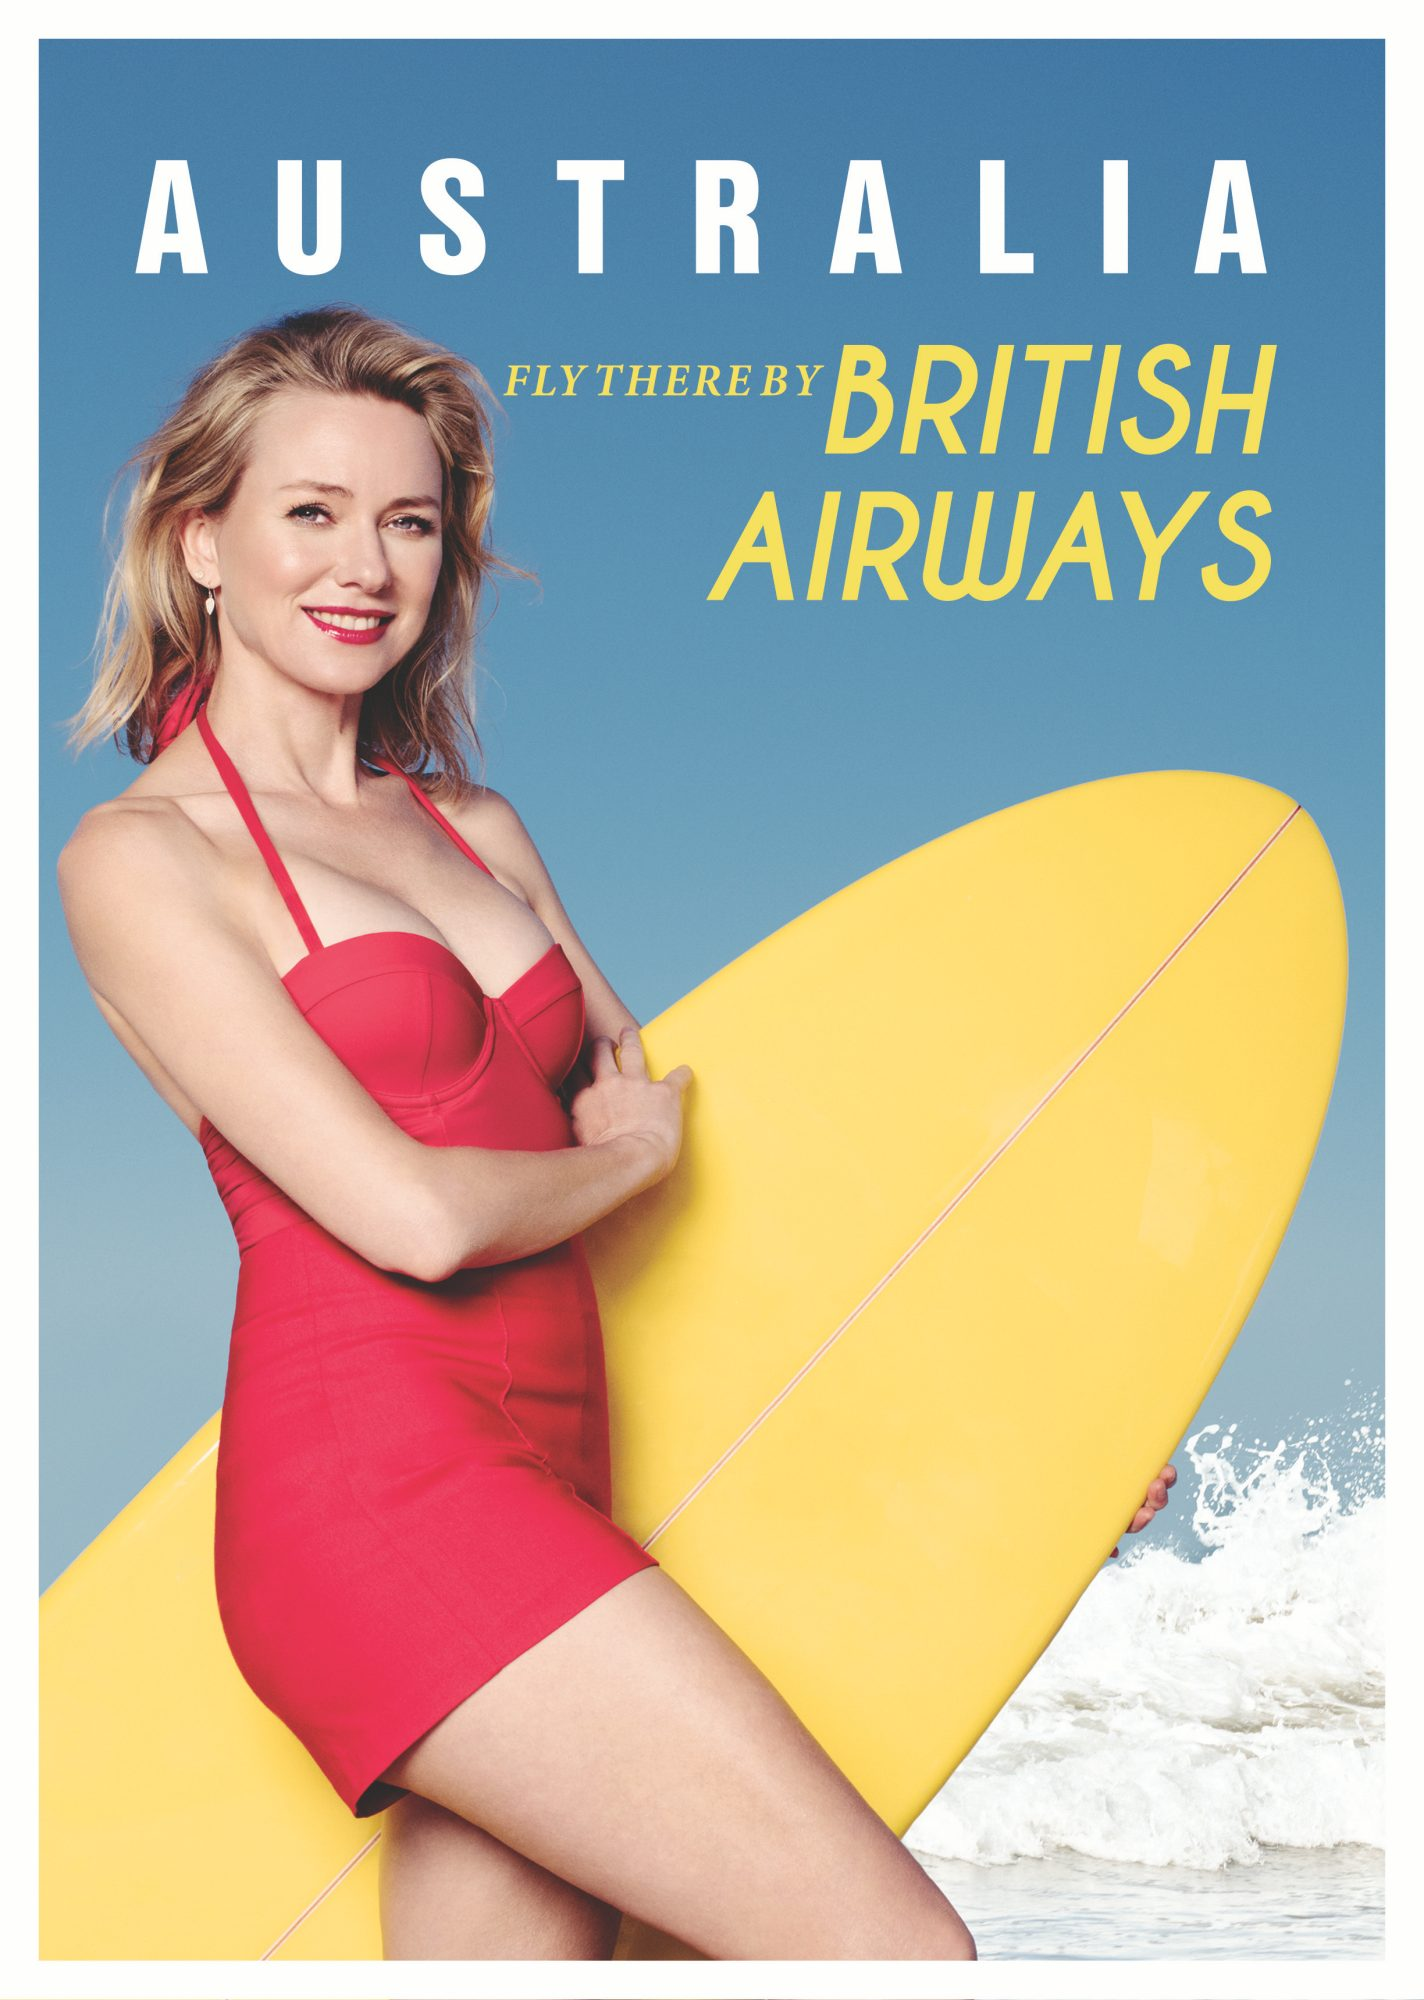 Naomi Watts in a modern take of the iconic 1956 British Airways poster.